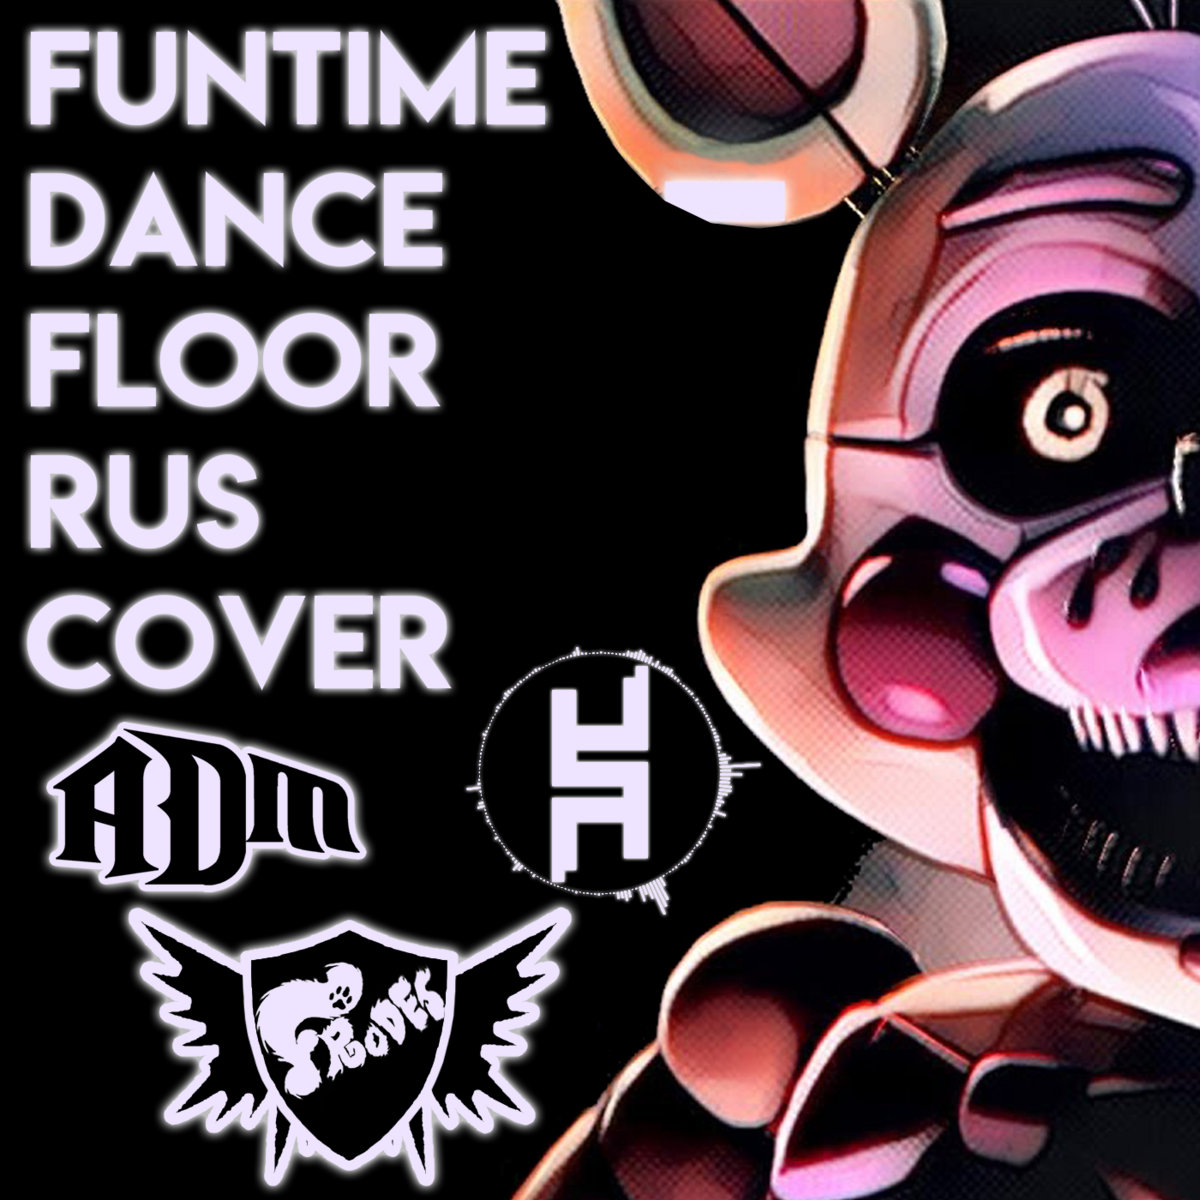 Ck9c Funtime Dance Floor Rus Cover Down The Line Records